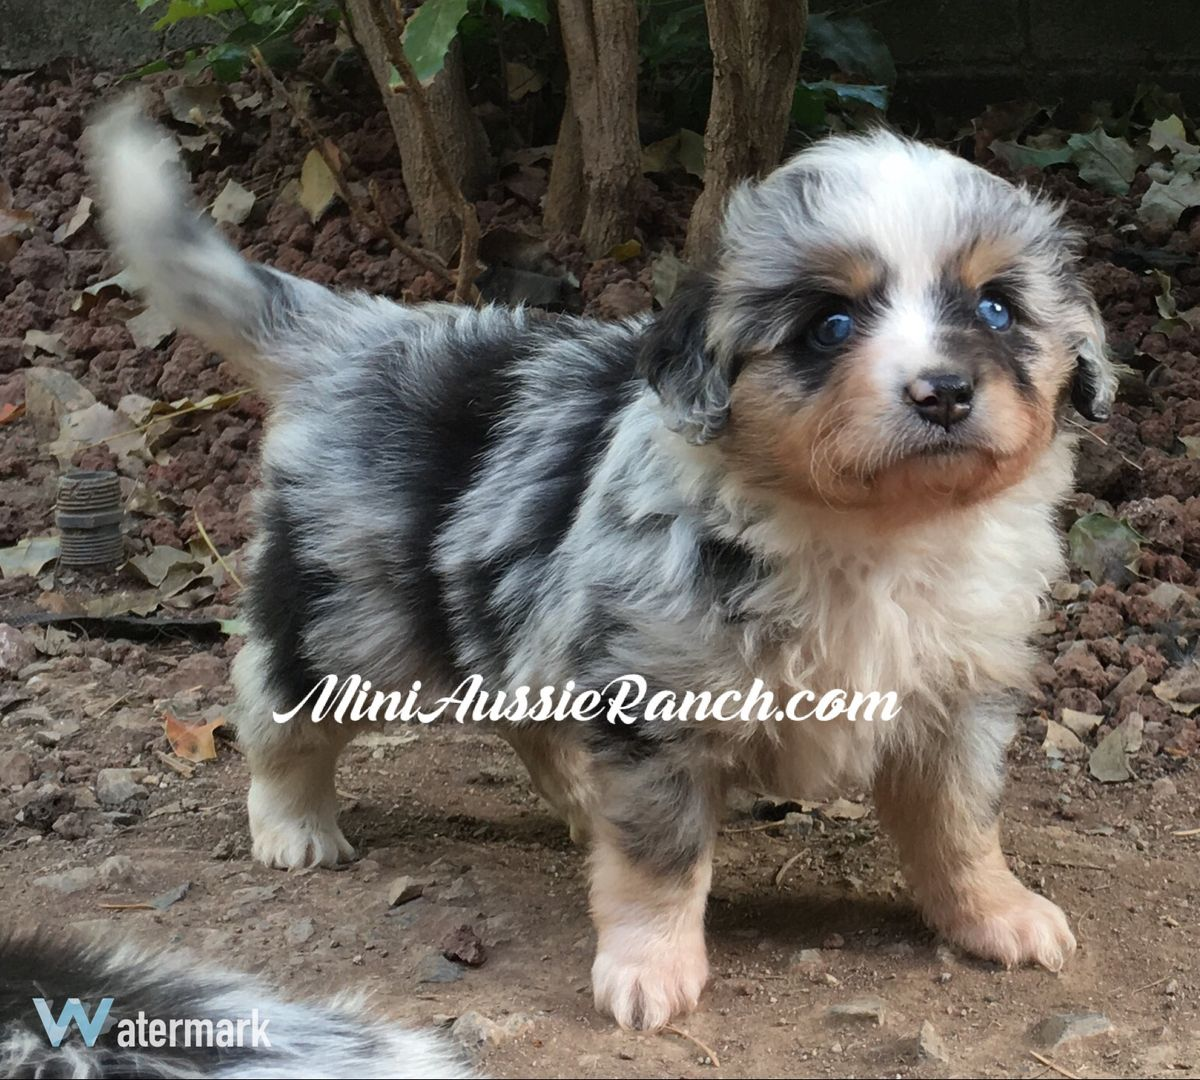 Miniature Australian Shepherd Puppies For Sale In California Australian Shepherd Puppies Miniature Australian Shepherd Puppies Shepherd Puppies